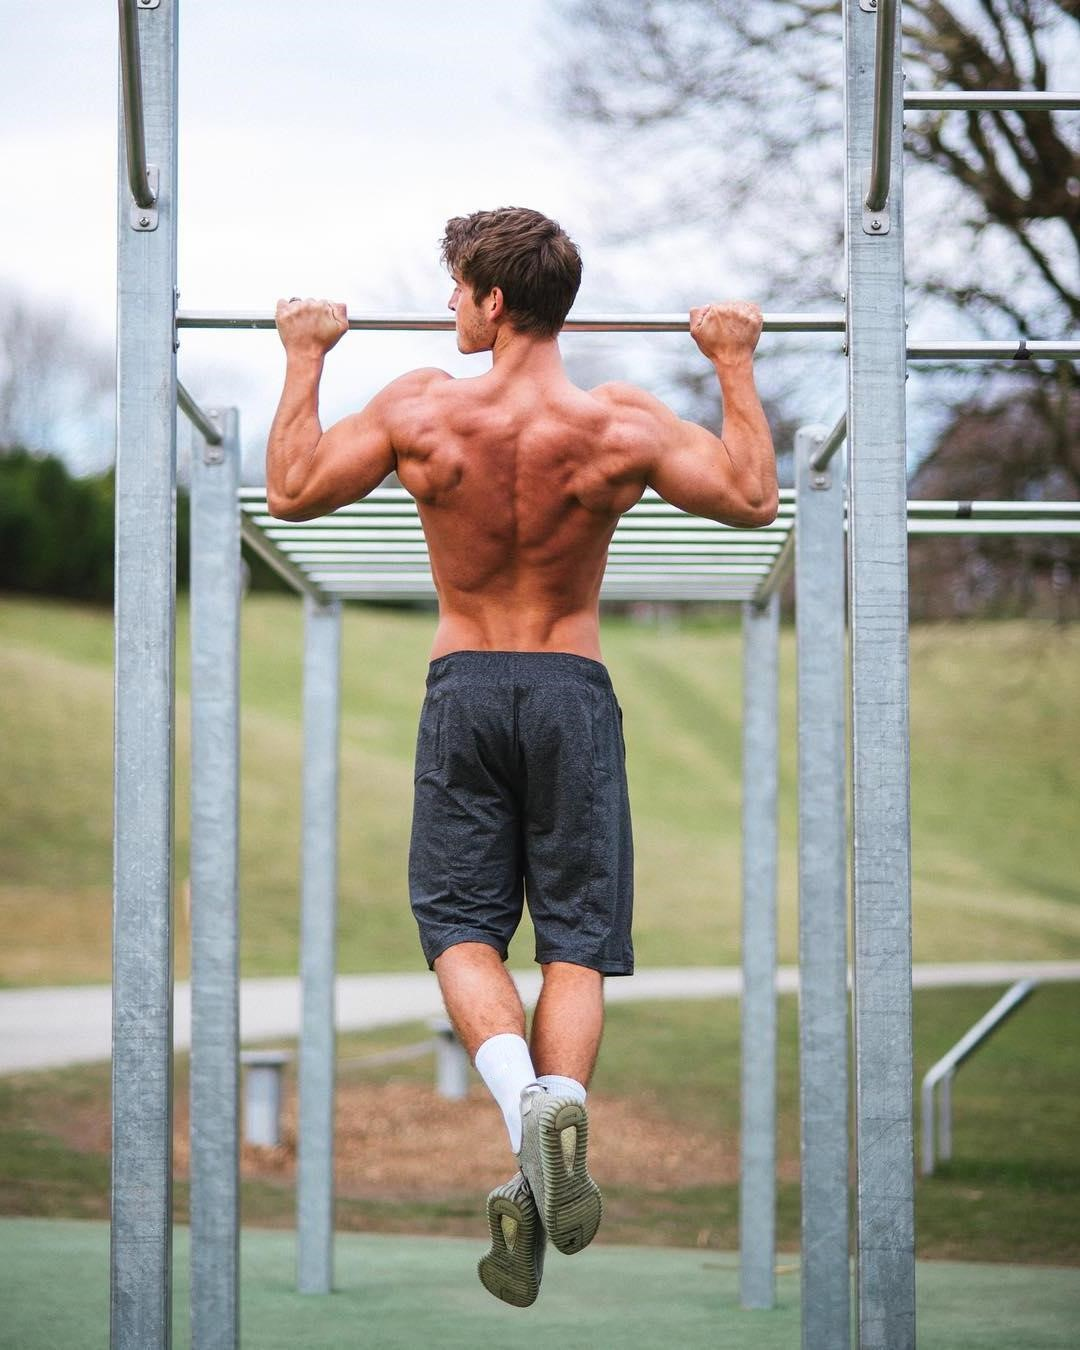 sexy-straight-gage-munroe-shirtless-young-muscle-back-man-park-cory-gruter-andrew-workout-outside-tom-taylor